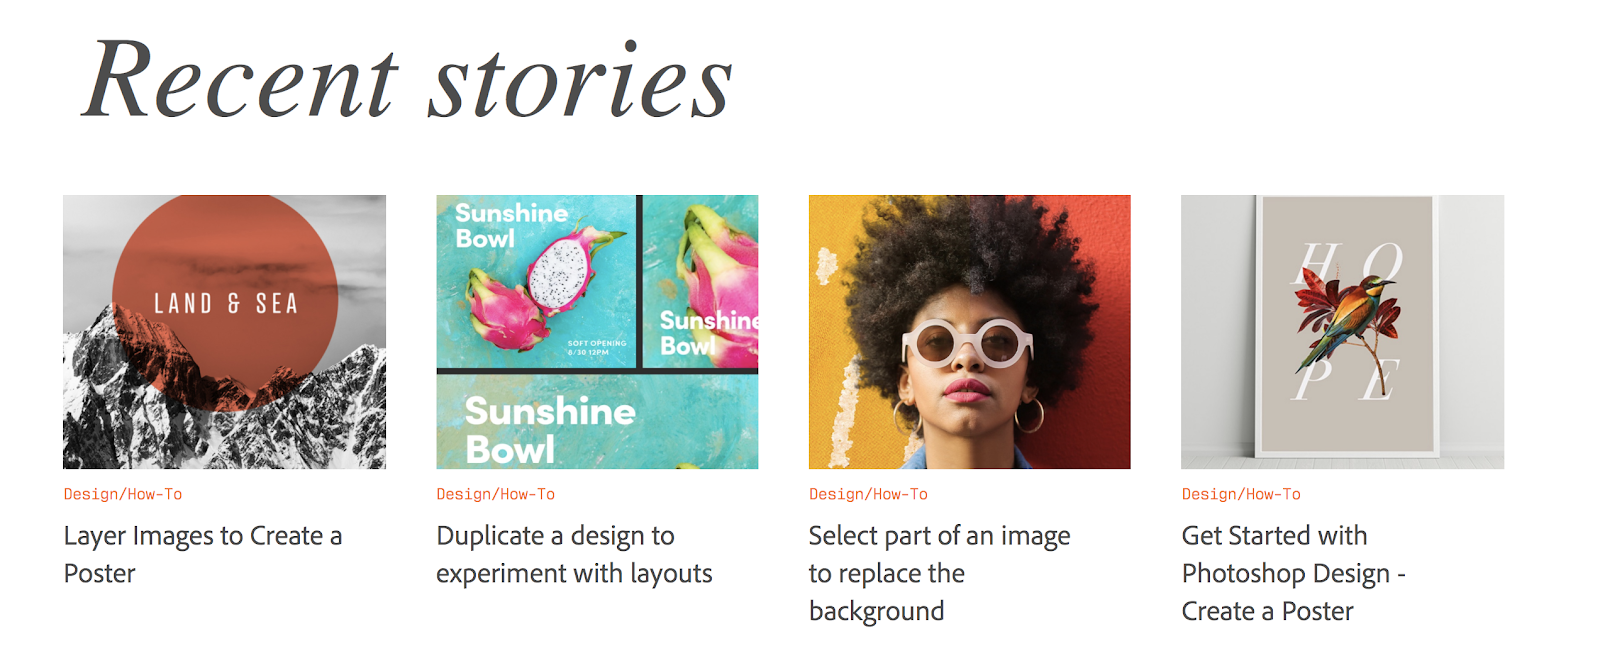 Adobe Create Recent Stories (and Featured Images) Screenshot